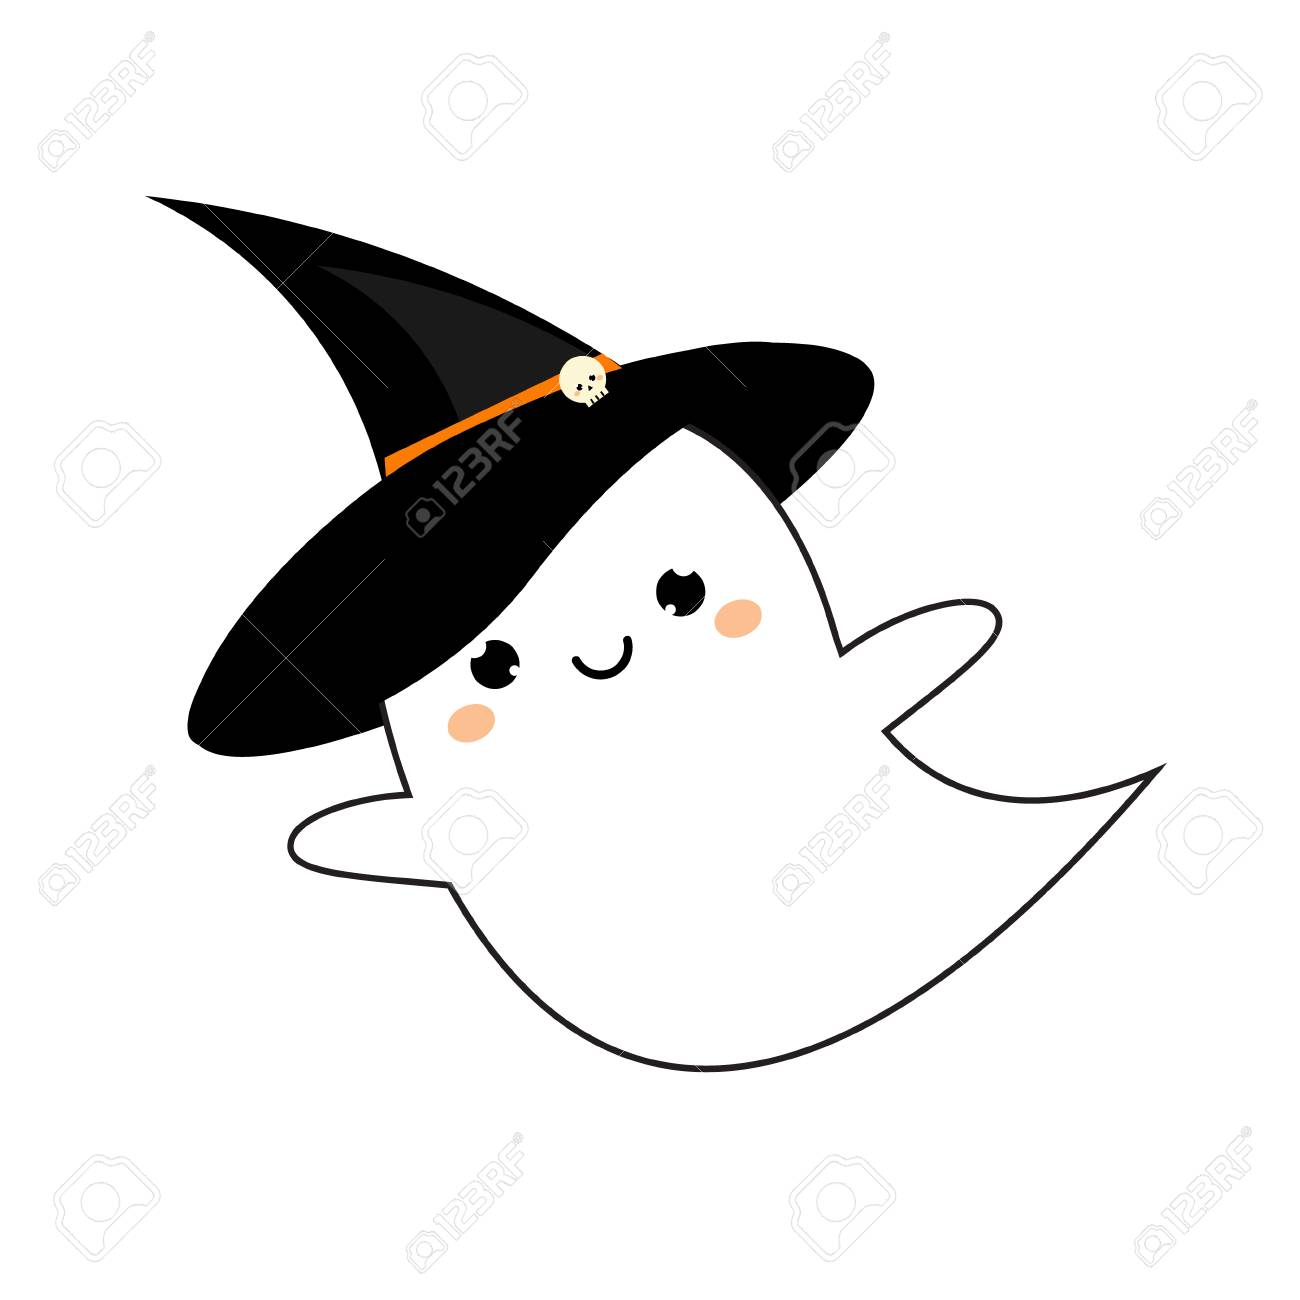 Cute Ghost In Halloween Hat Royalty Free Cliparts Vectors And Stock Illustration Image 88089456 With tenor, maker of gif keyboard, add popular cute ghost animated gifs to your conversations. cute ghost in halloween hat